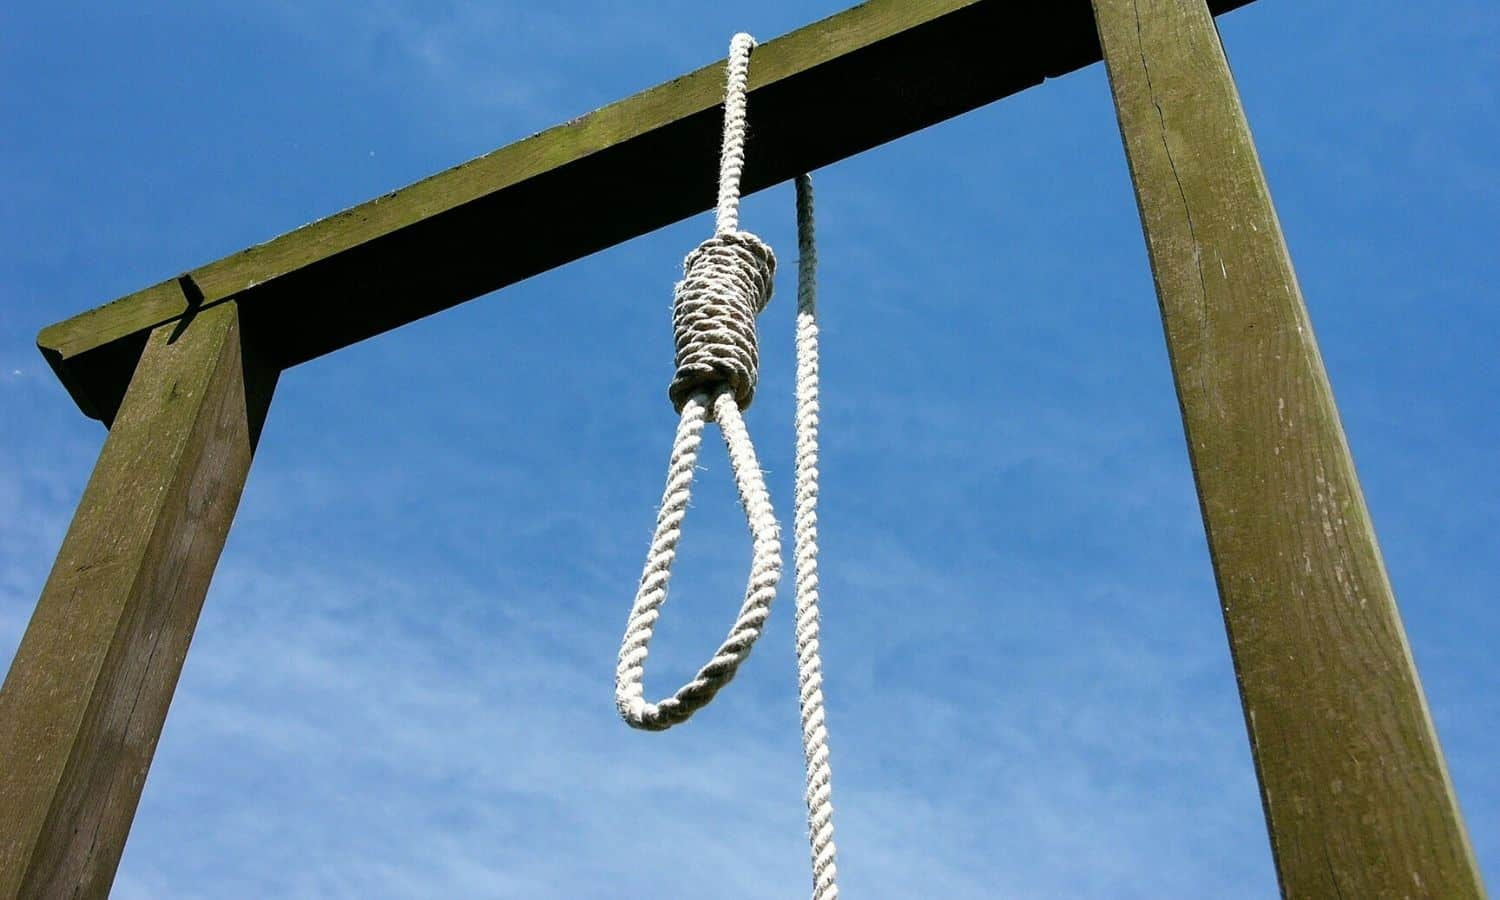 gallows noose knot